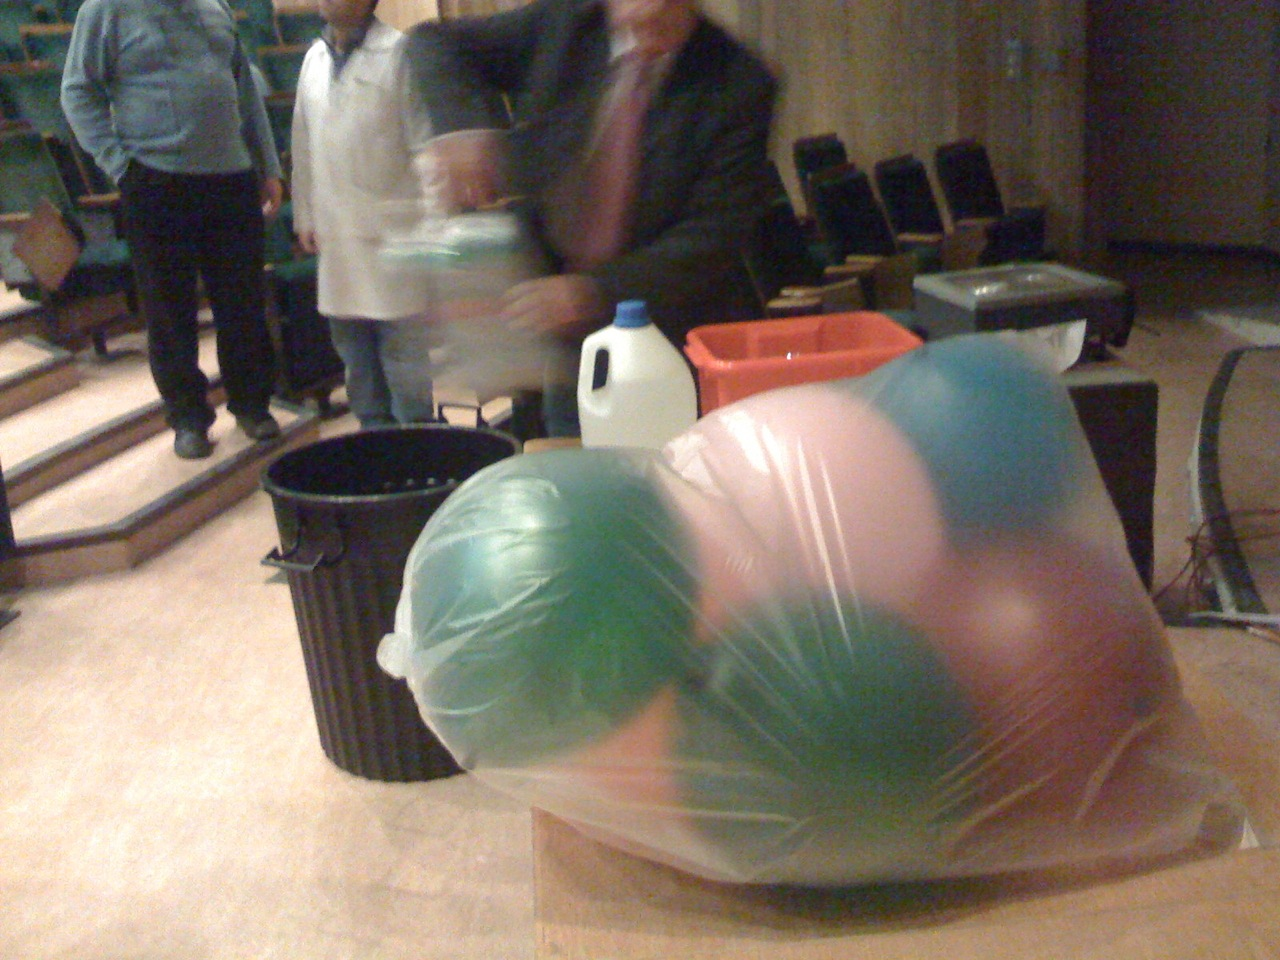 Much to my surprise, they filled balloons with sulfur hexafluoride for the SF6 Reverse Helium demo.